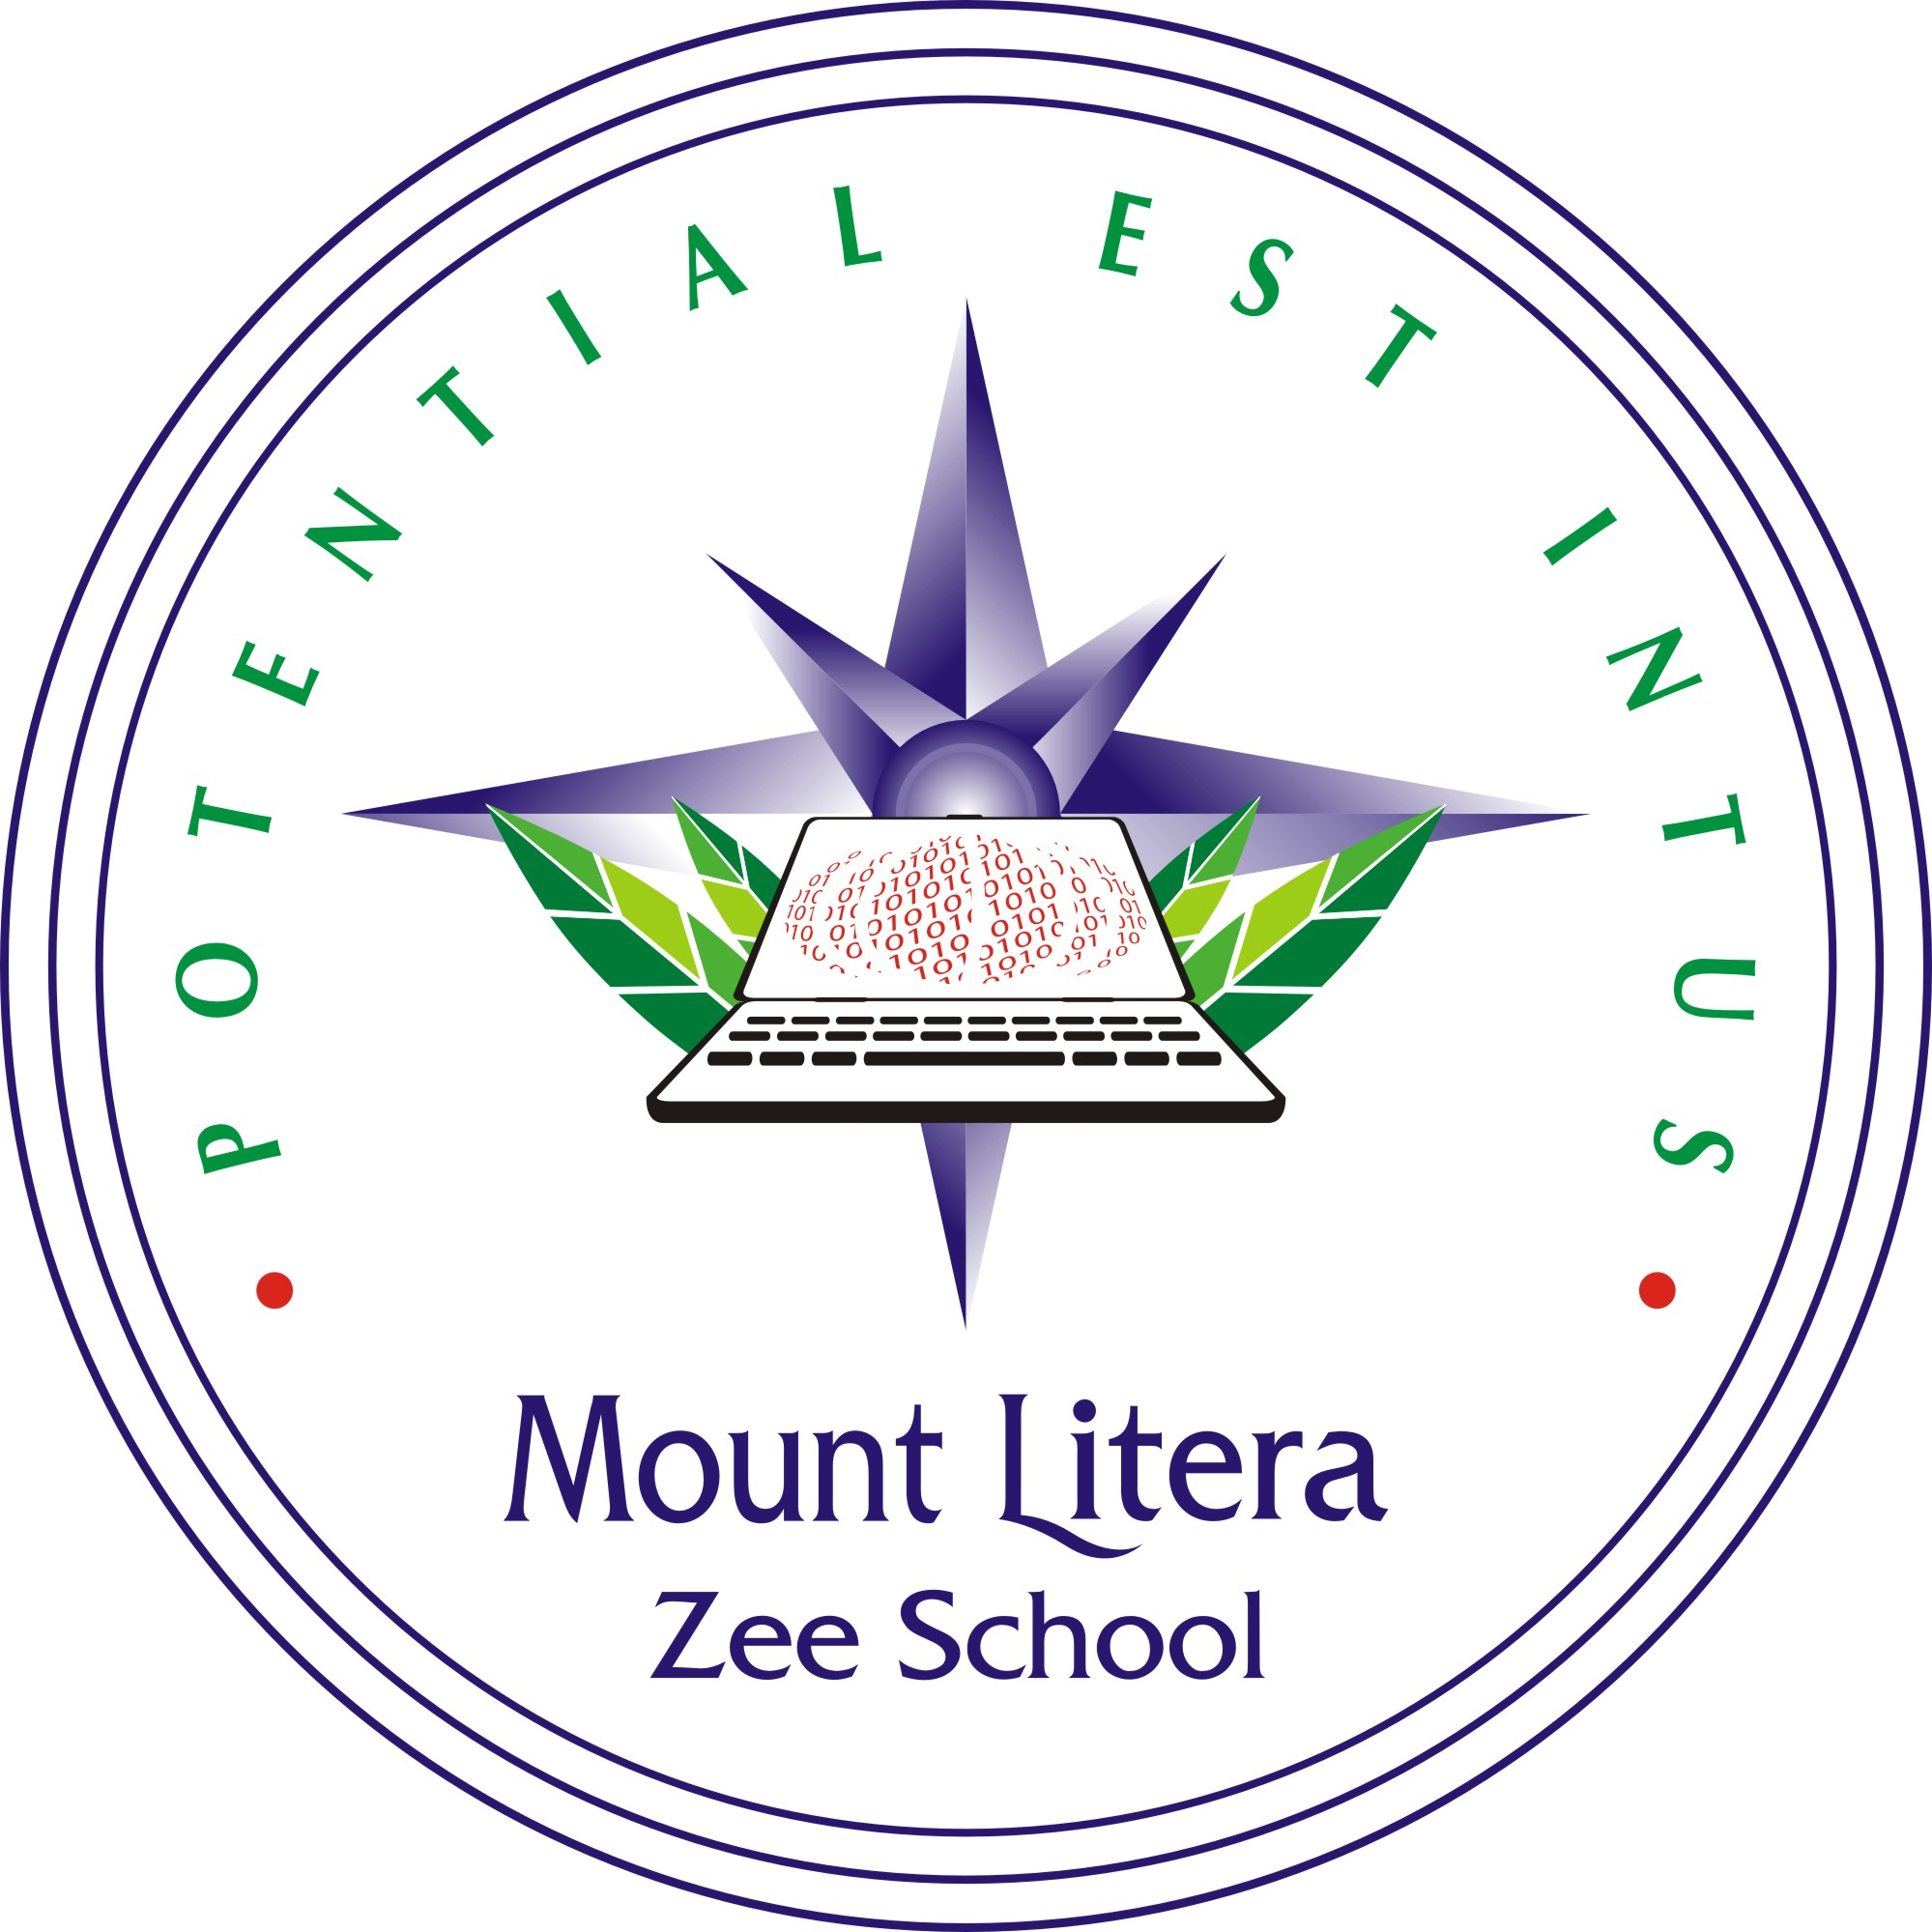 Mount Litera Zee School Hsr Layout Bangalore Reviews Schools